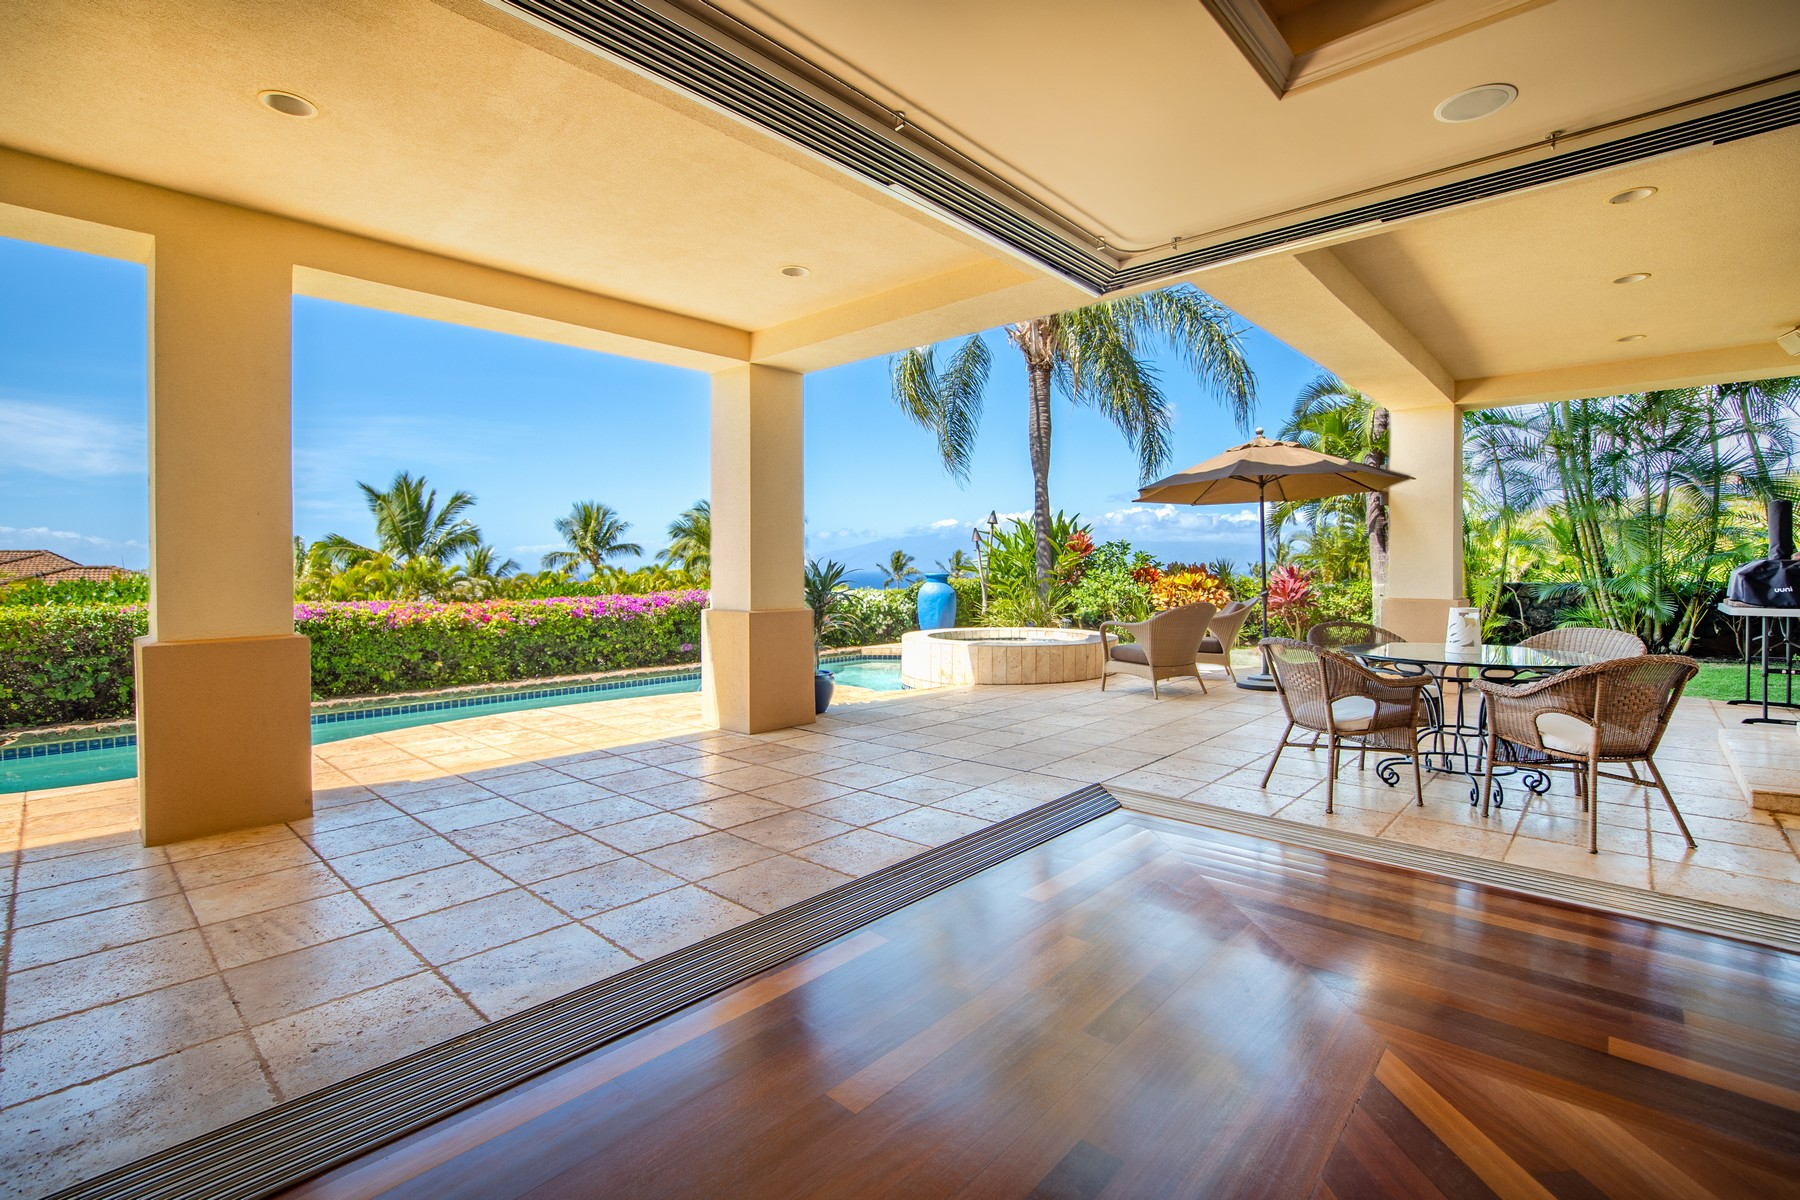 Single Family Homes for Sale at Live Inspired with Stunning Ocean and Island Views 384 Wekiu Place, Summit at Kaanapali Kaanapali, Hawaii 96761 United States